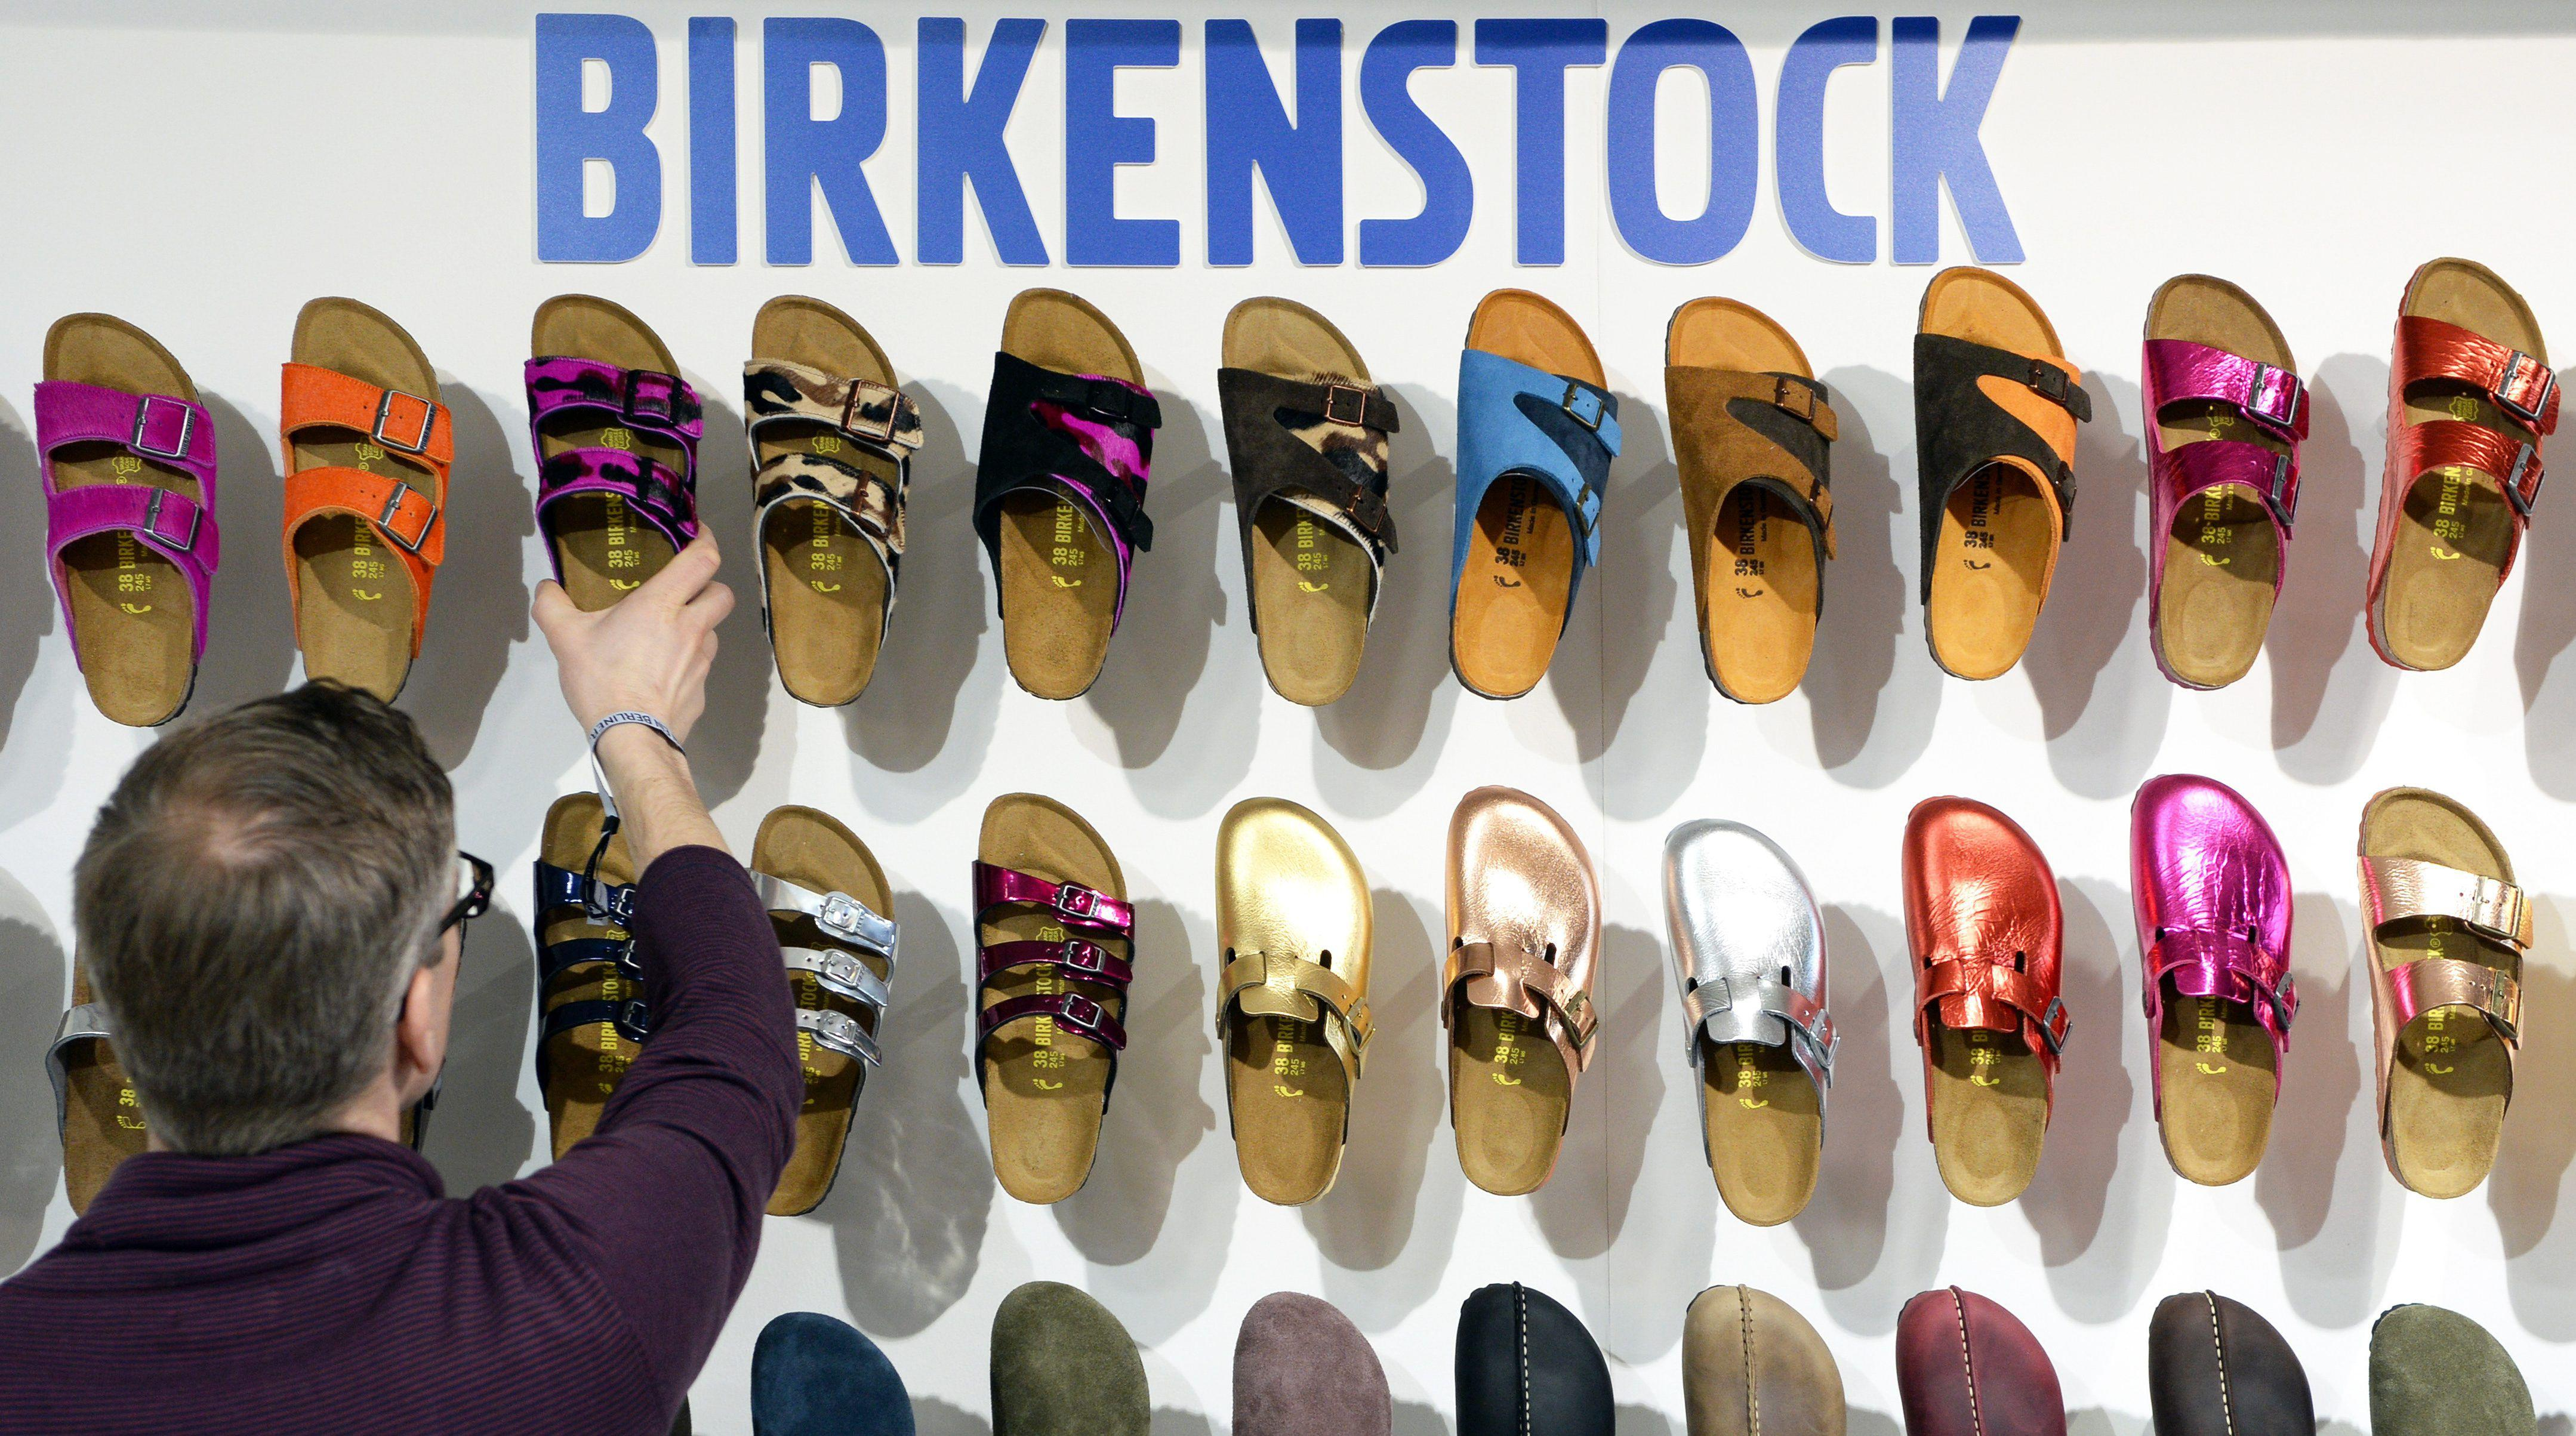 Birkenstock's CEO Rails Against Amazon for Selling